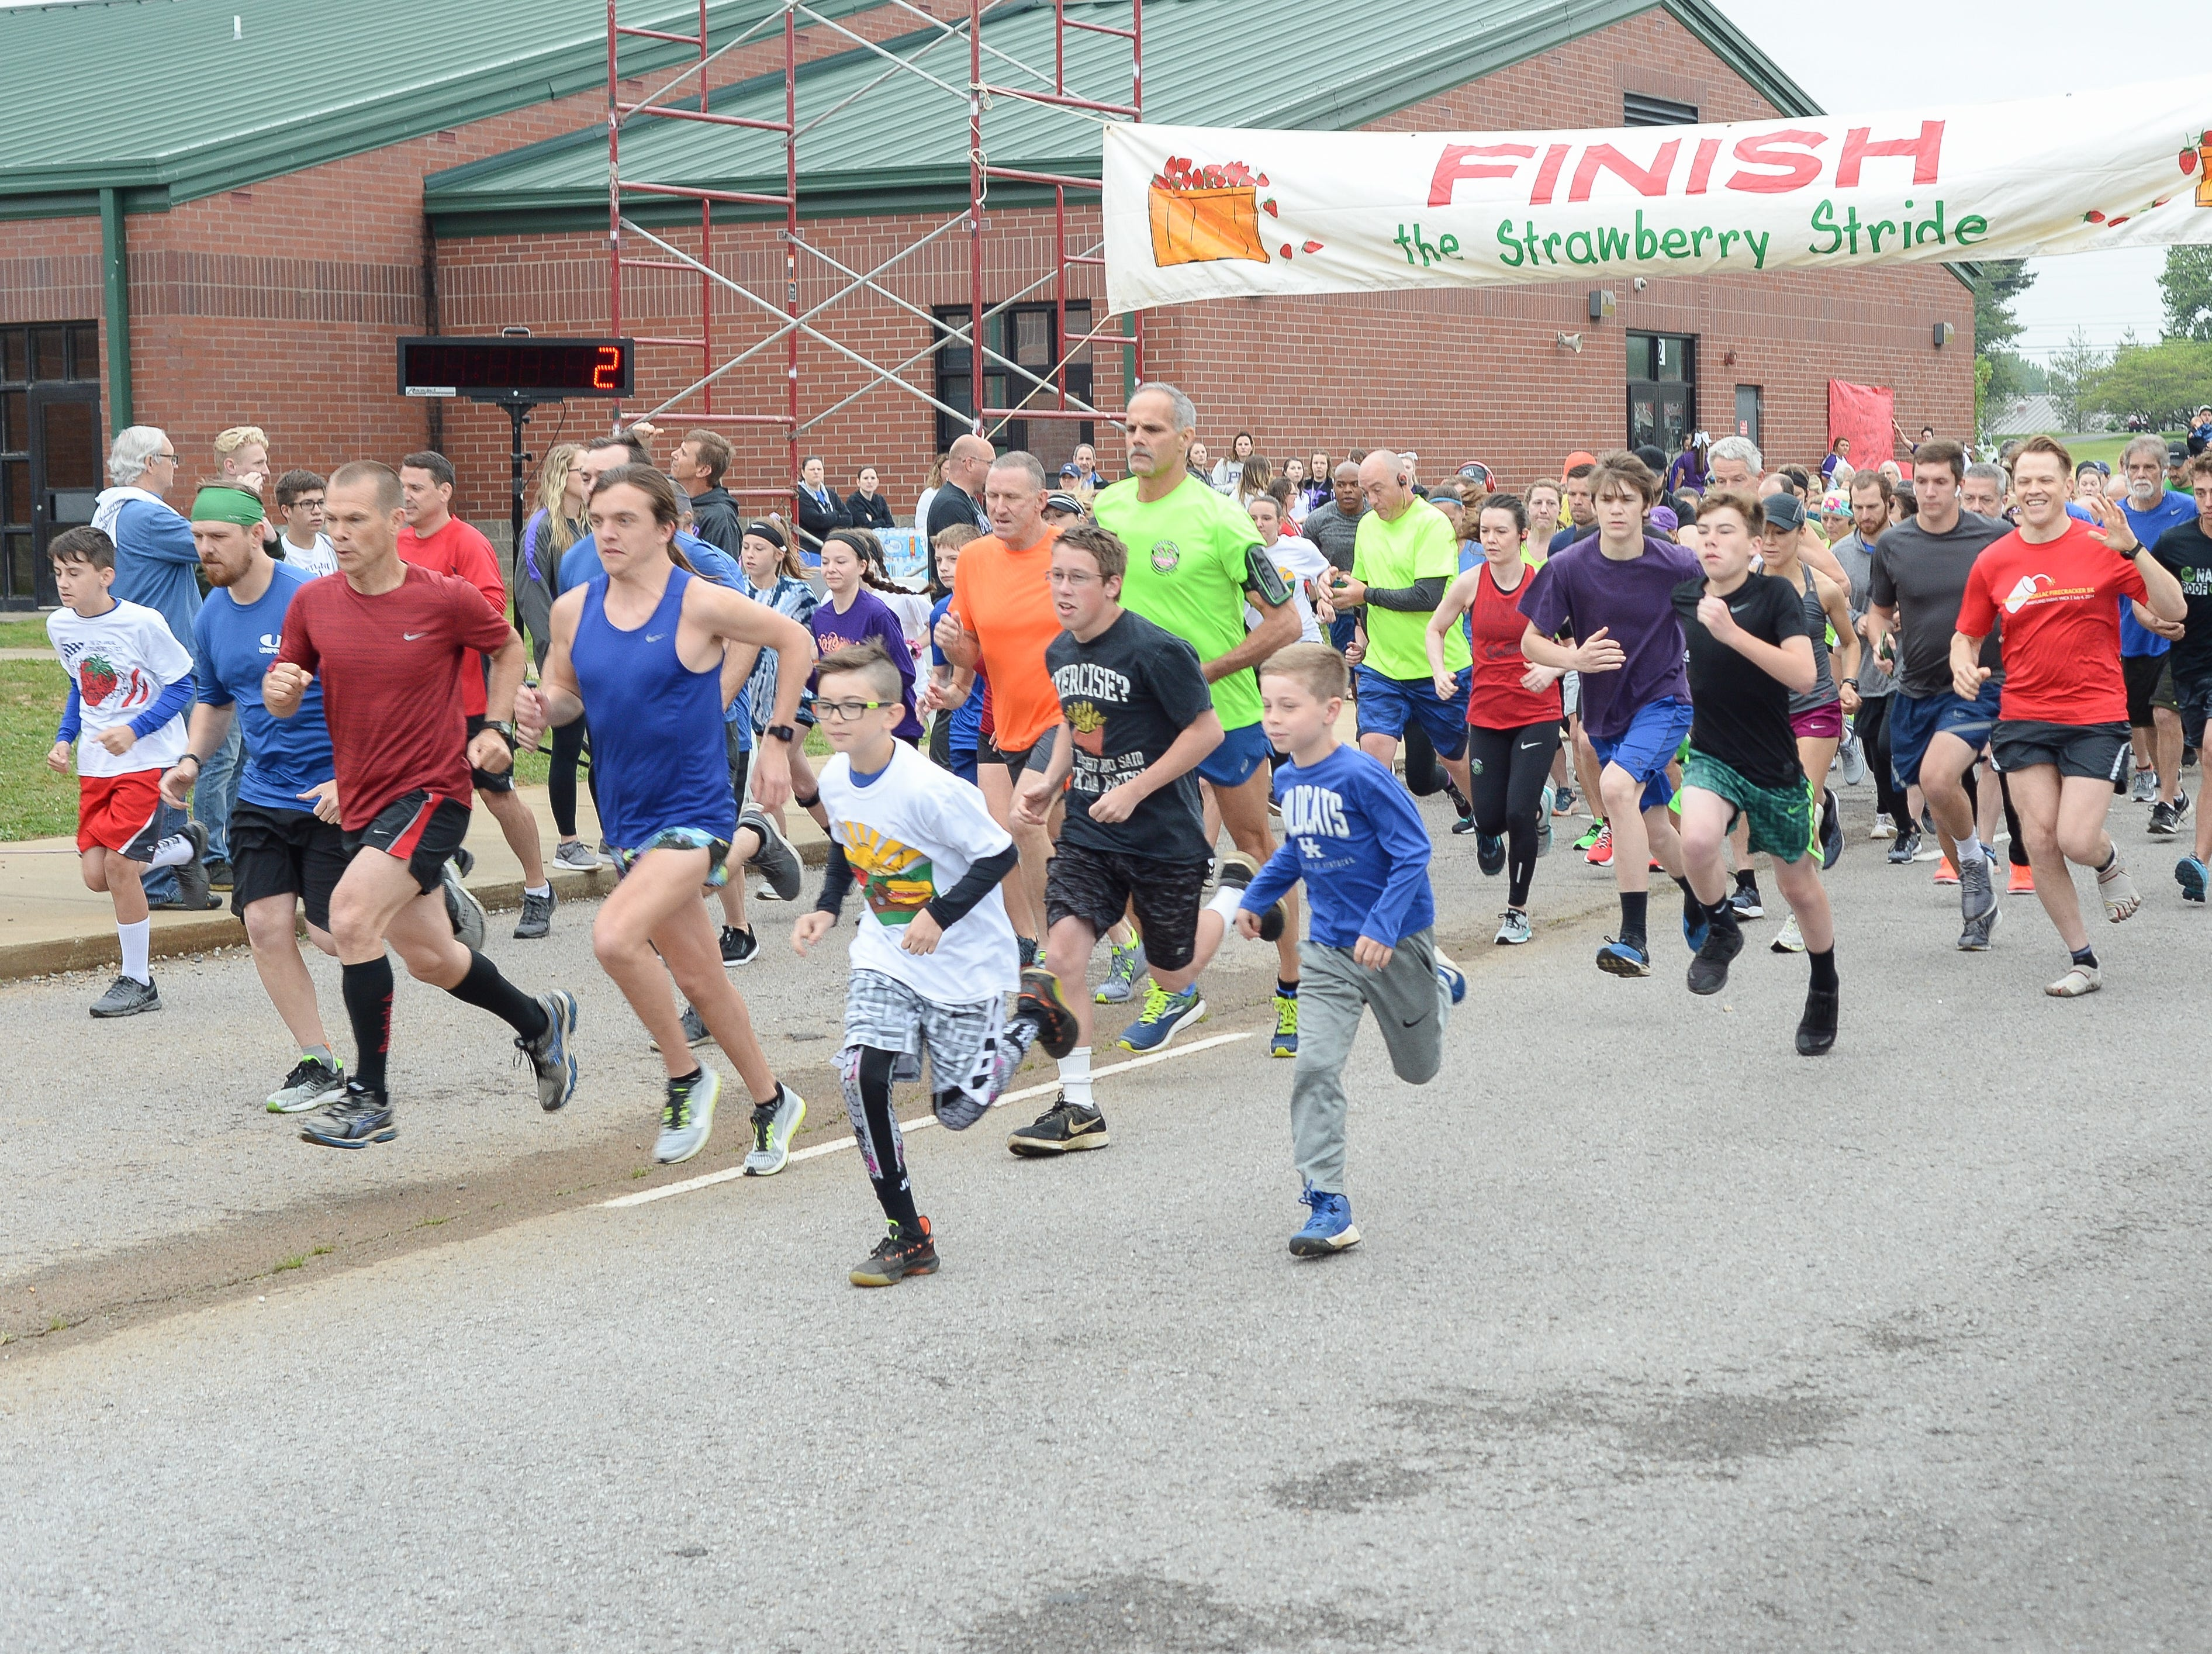 The Strawberry Stride kicks off at Portland High School during the 78th Annual Middle Tennessee Strawberry Festival presented by the Portland Chamber of Commerce in Portland on Saturday, May 11.